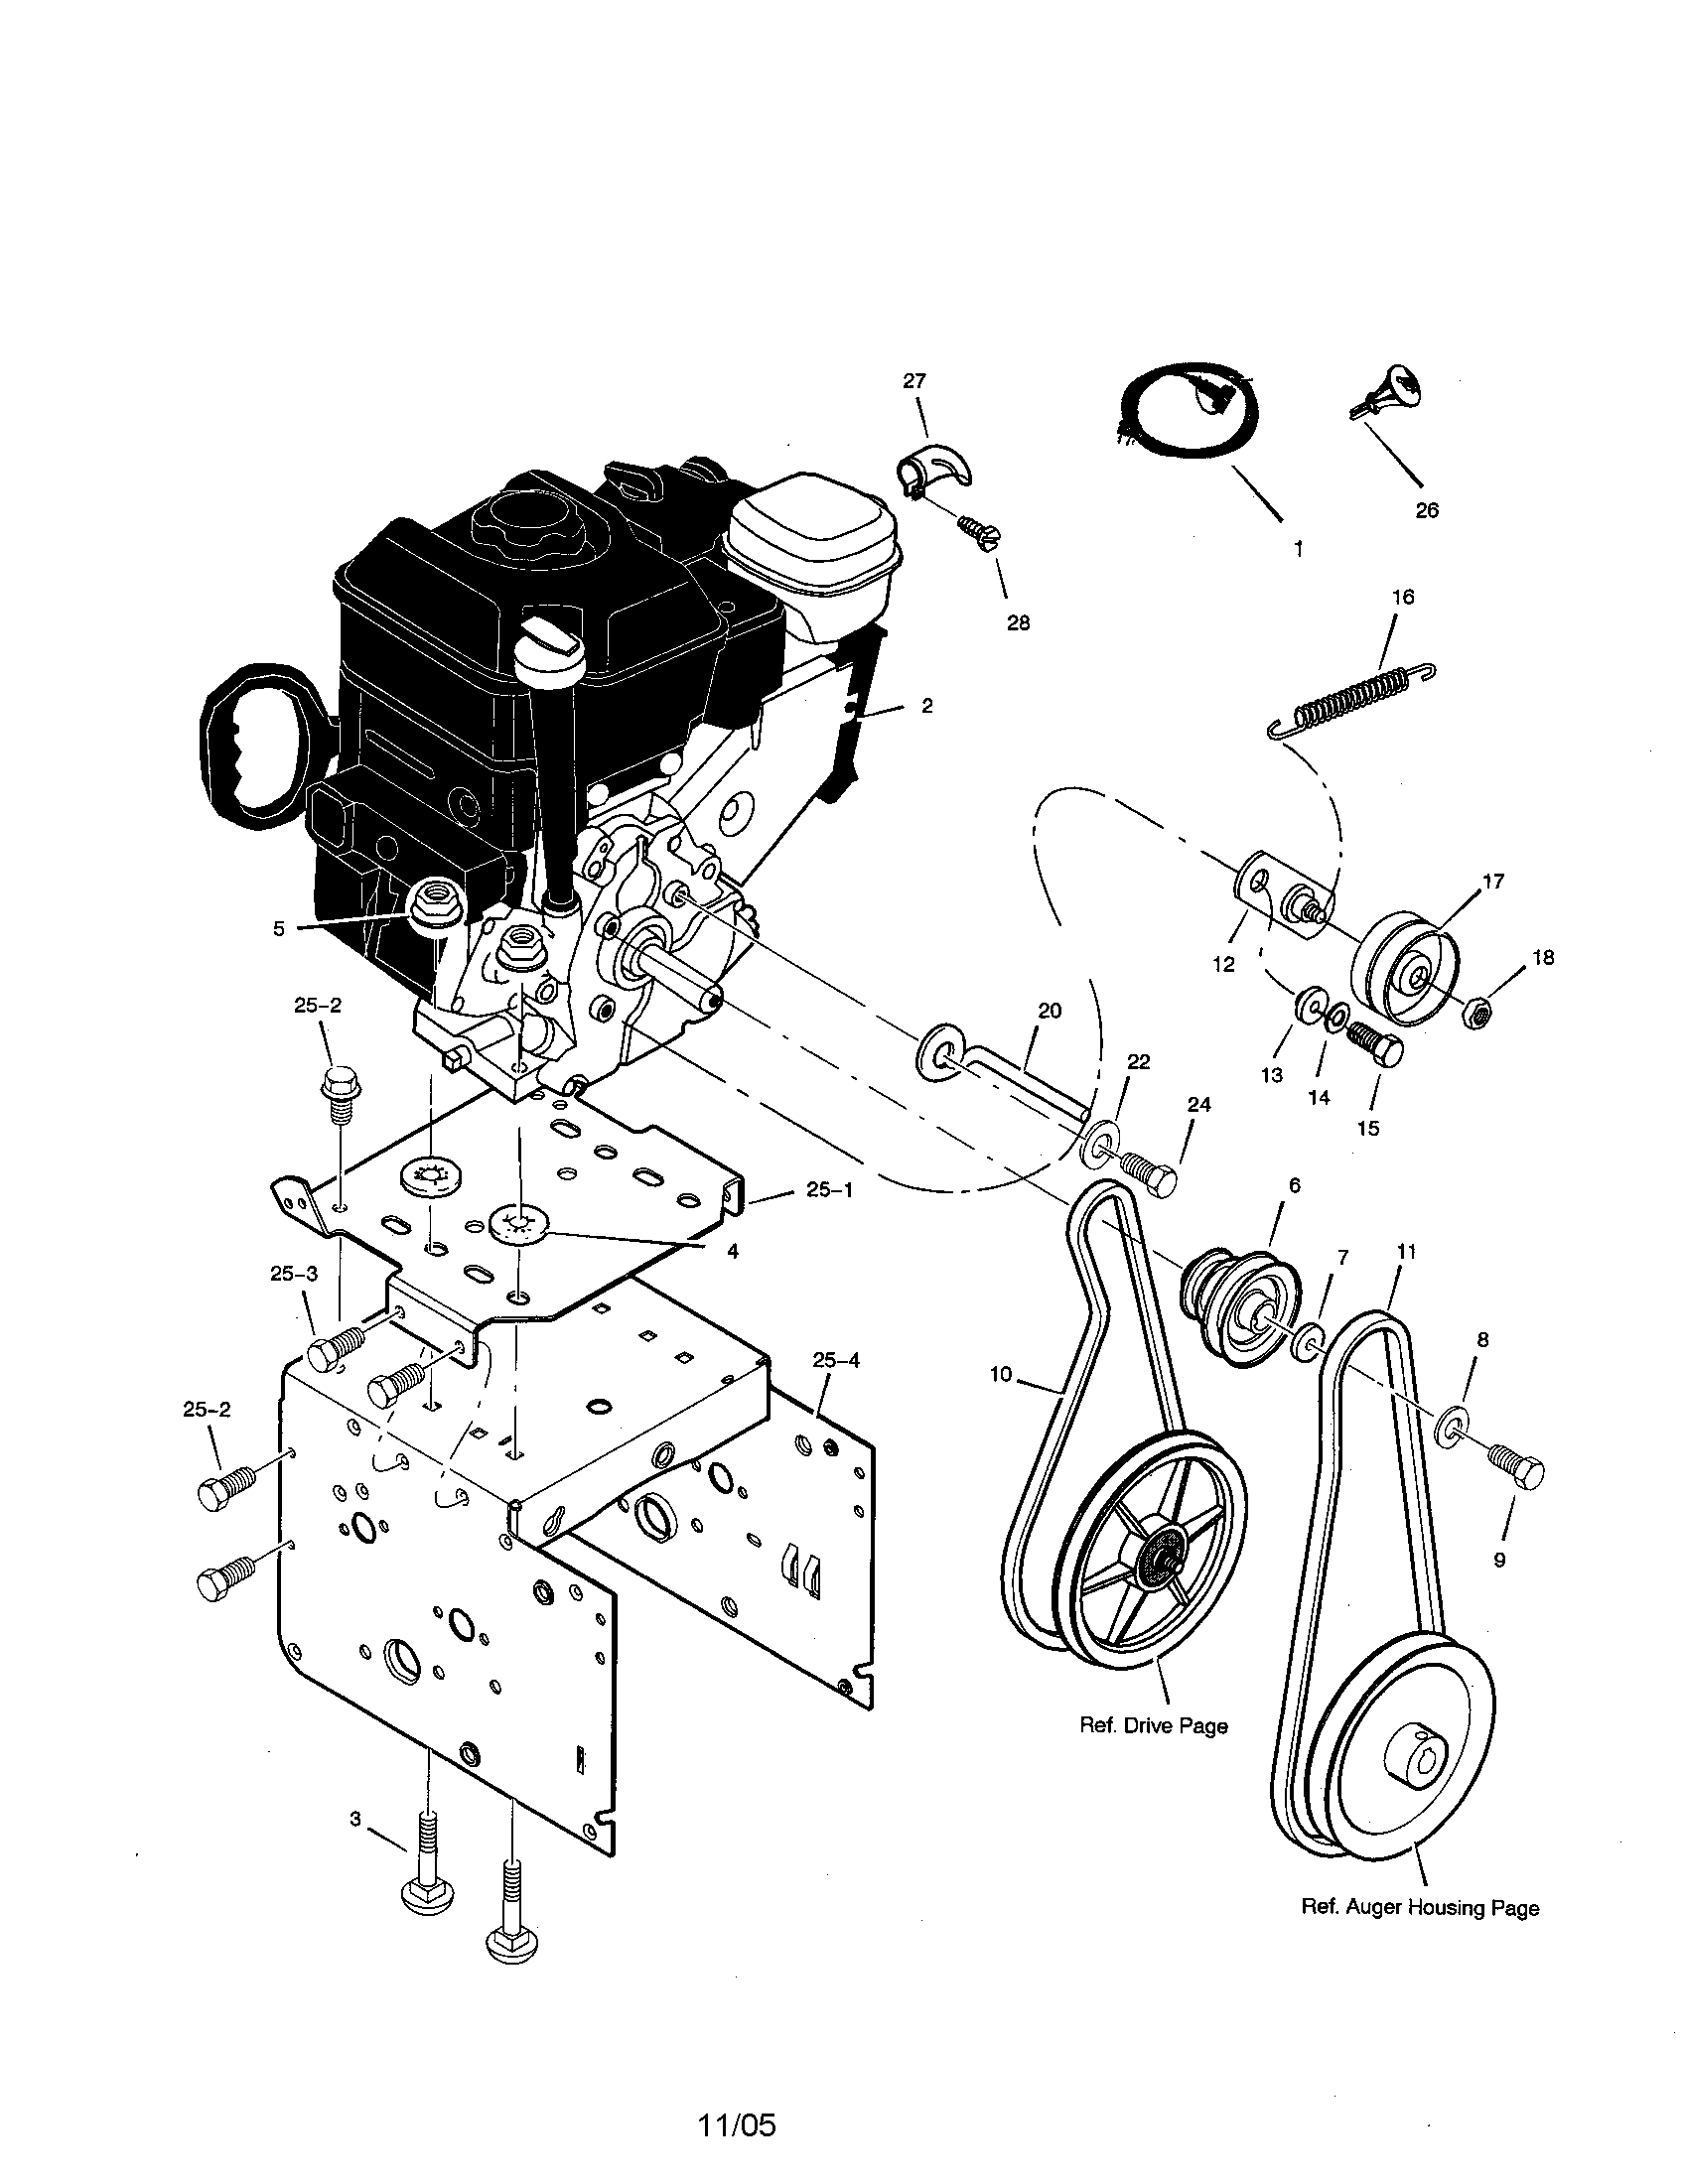 2003 Craftsman Snowblower Manual